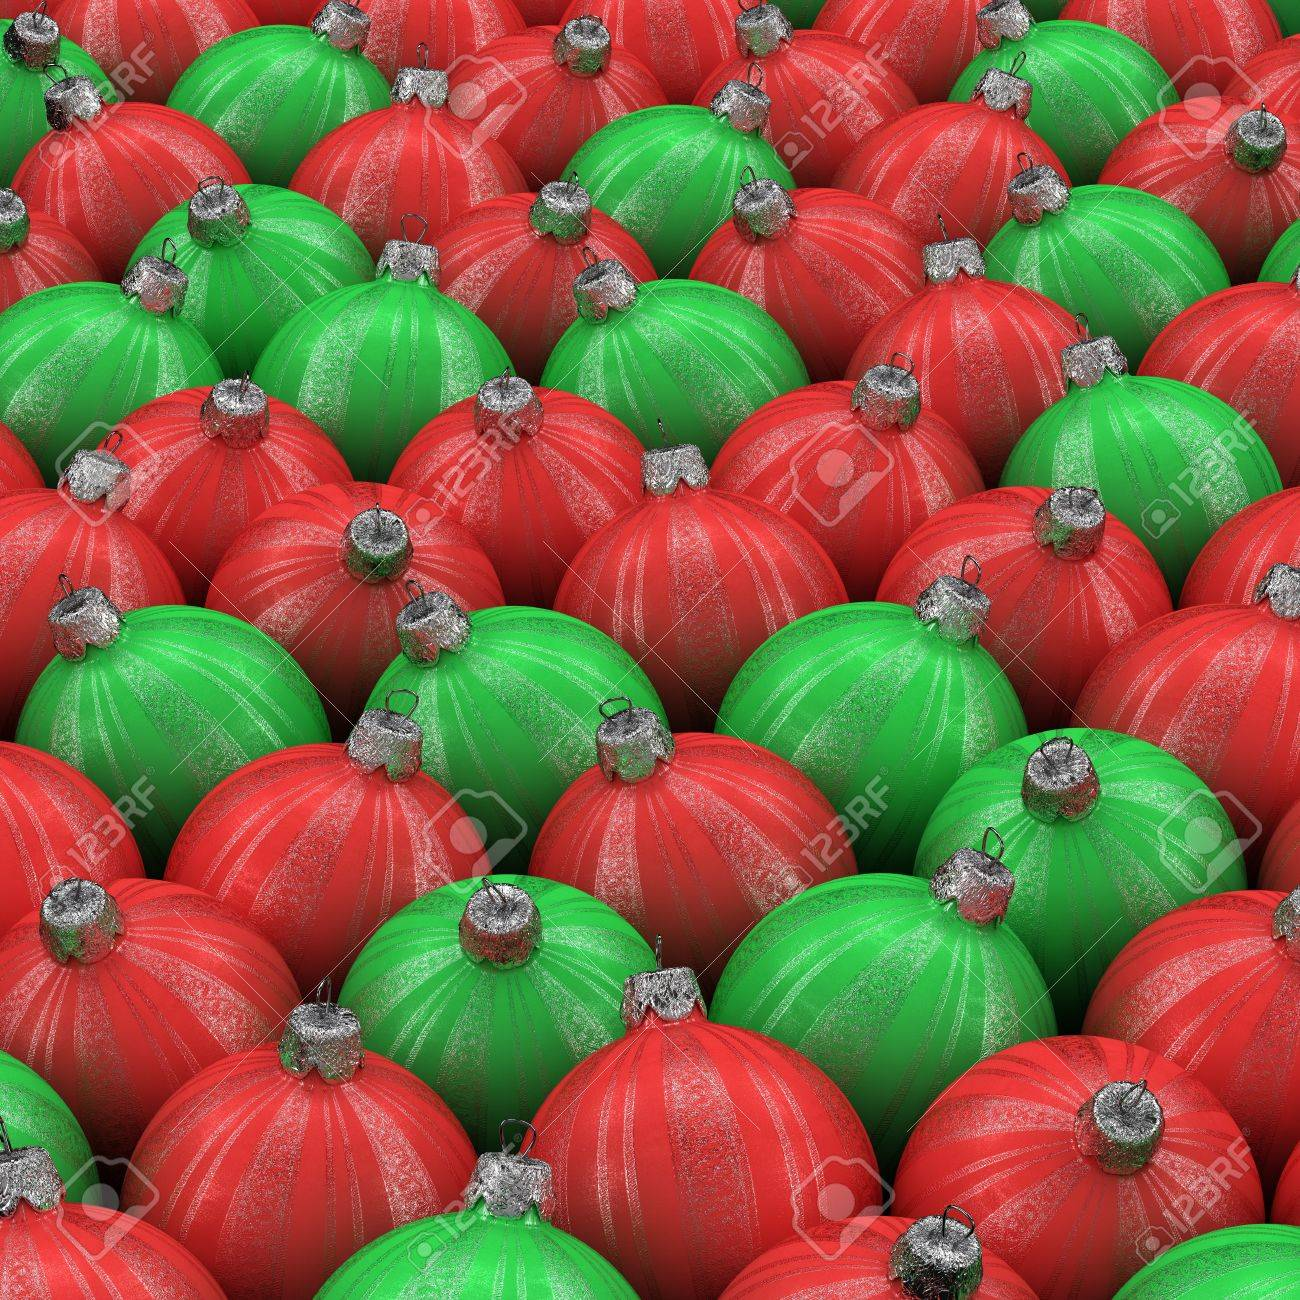 Red green and white christmas ornaments - Green And Red Christmas Ornaments On White Background Stock Photo 7586639